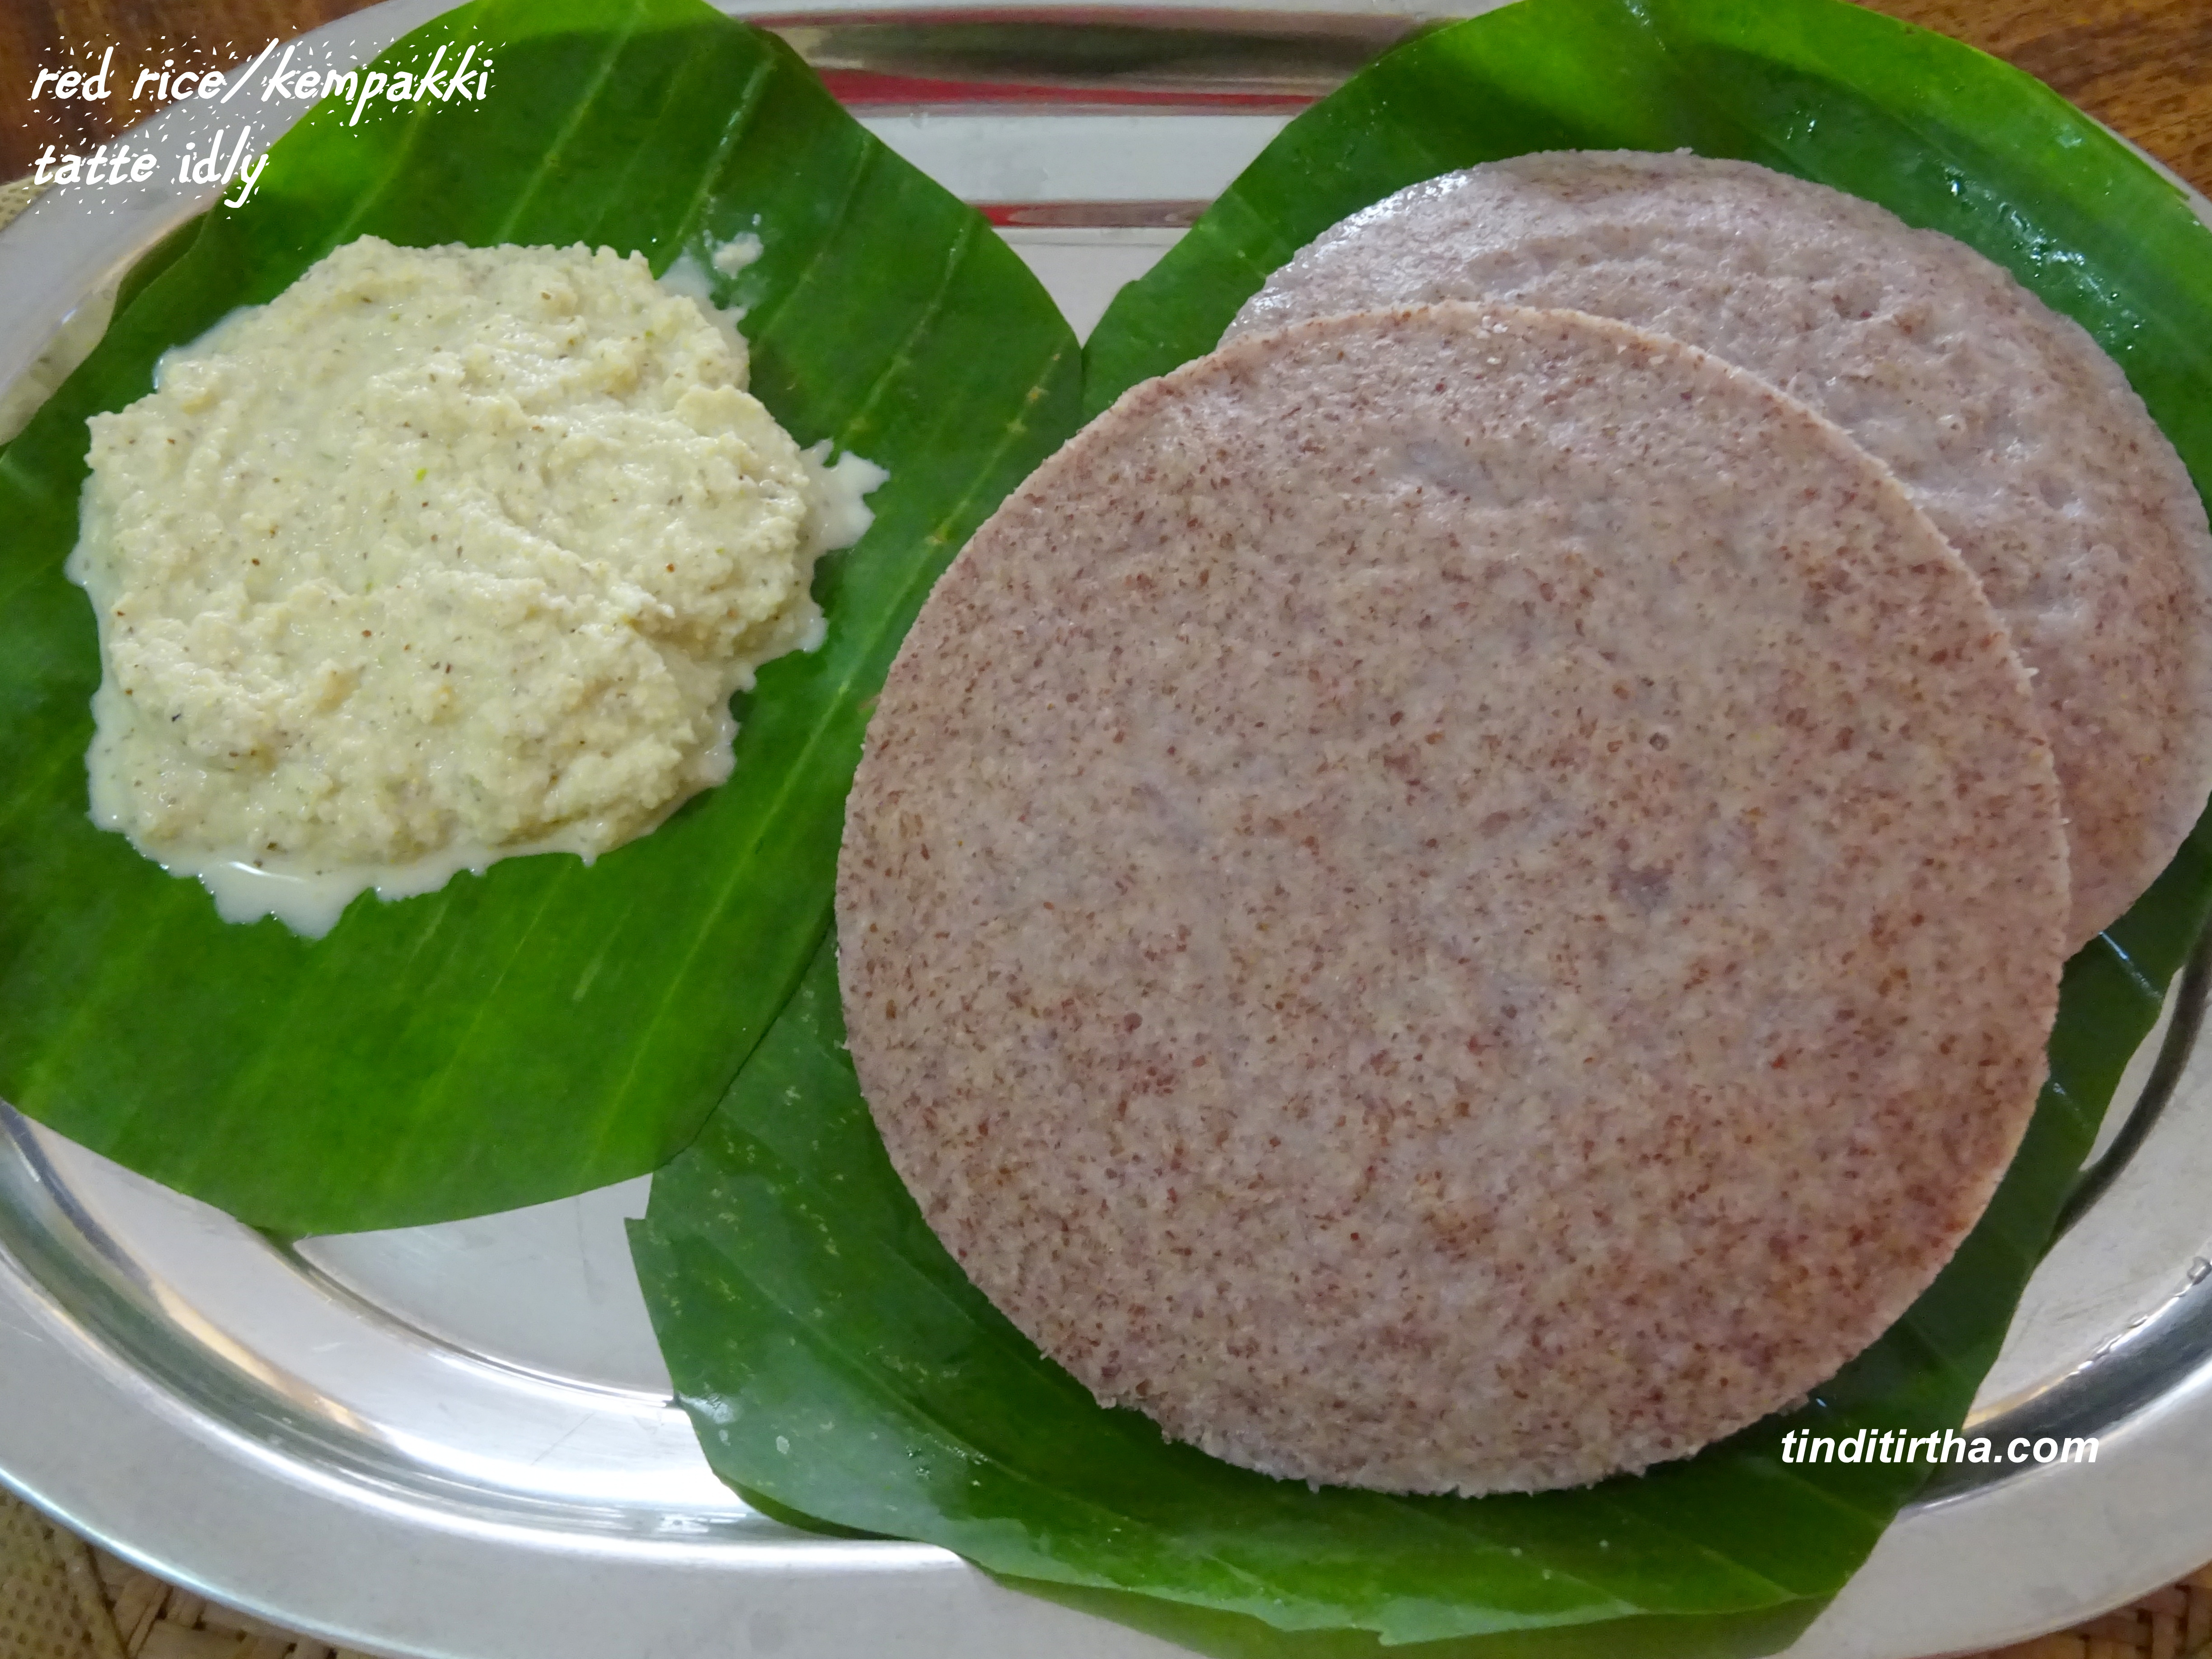 Tatte idly using red ricekempu akkikempakki tatte idly tindi tirtha posted in breakfast recipes diabetic friendly recipes on march 21 2018 by divya suresh forumfinder Images